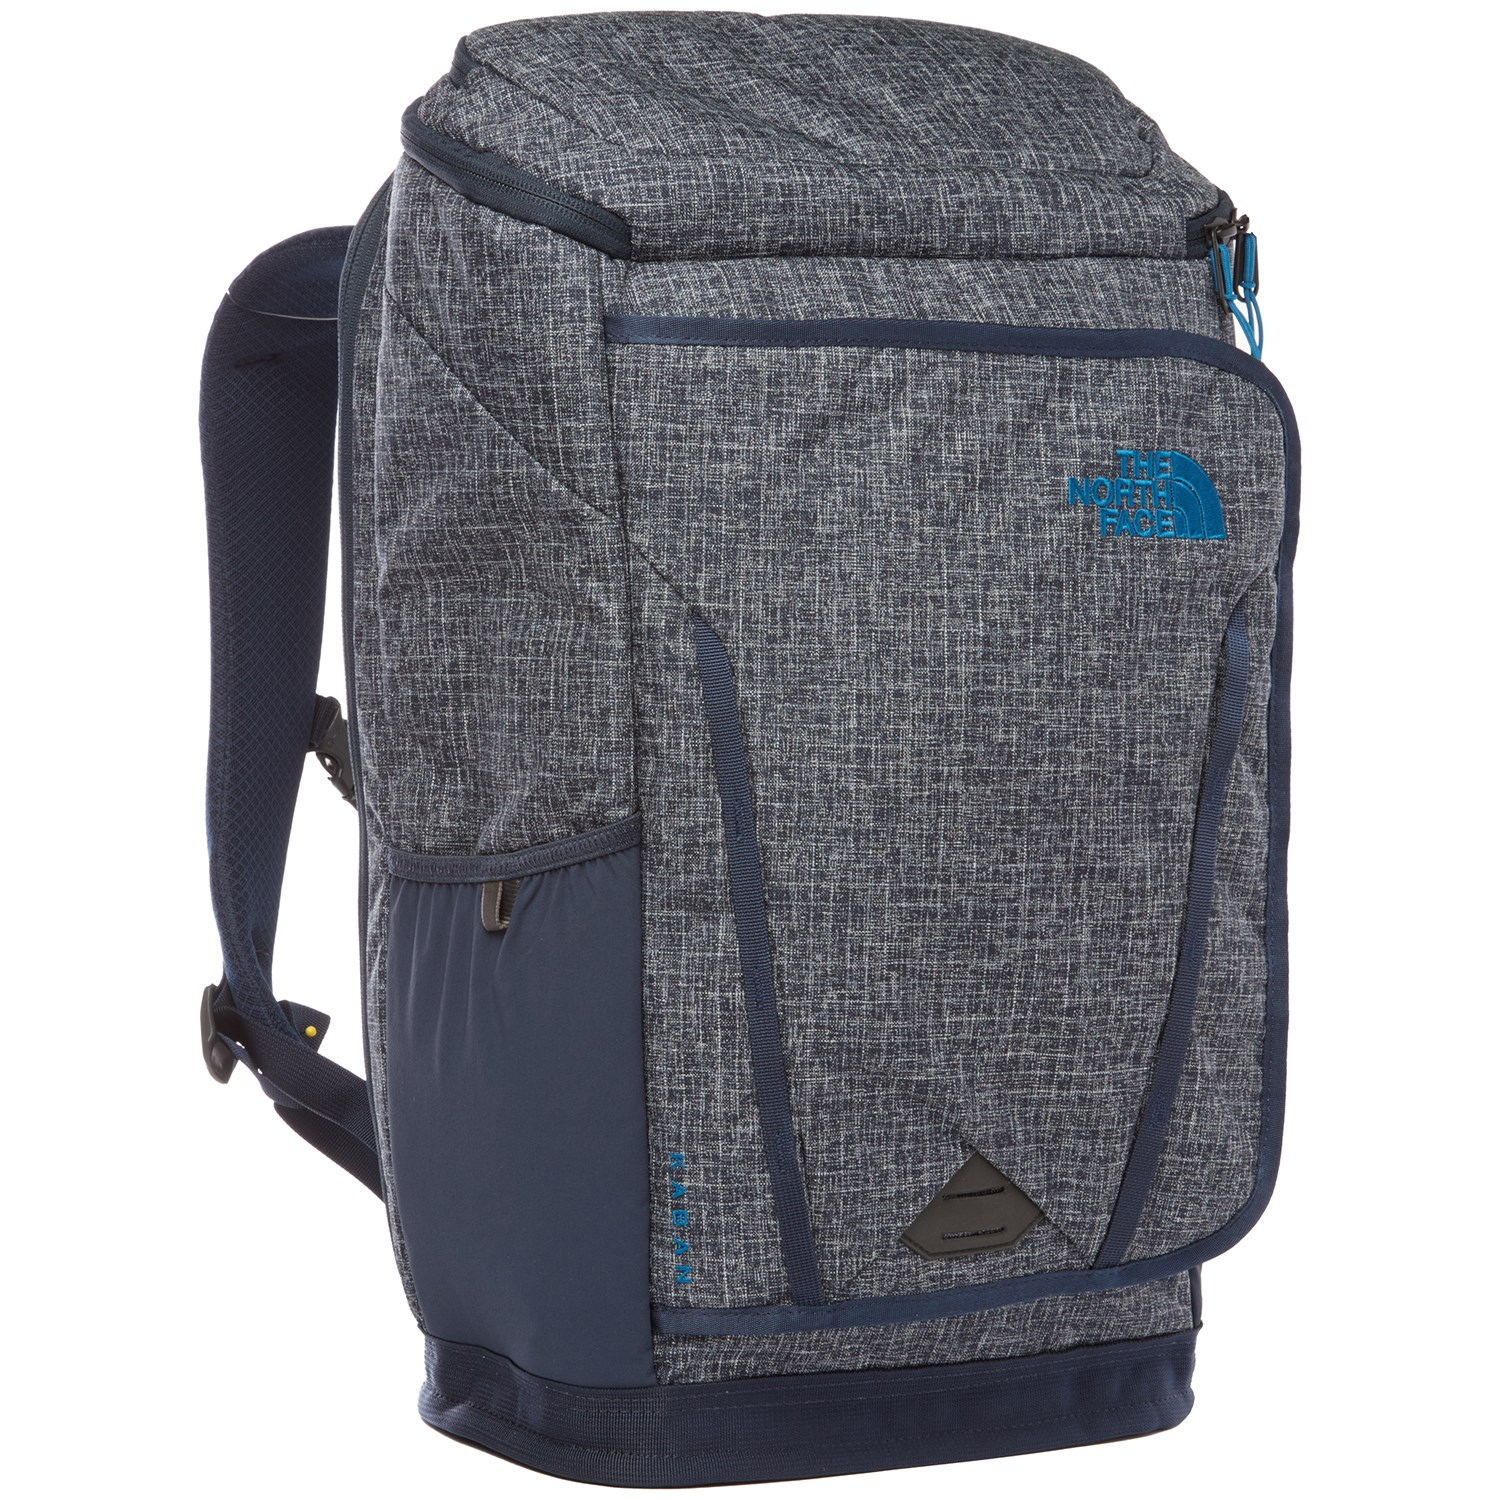 c6d62b19a The North Face Kaban Transit Backpack